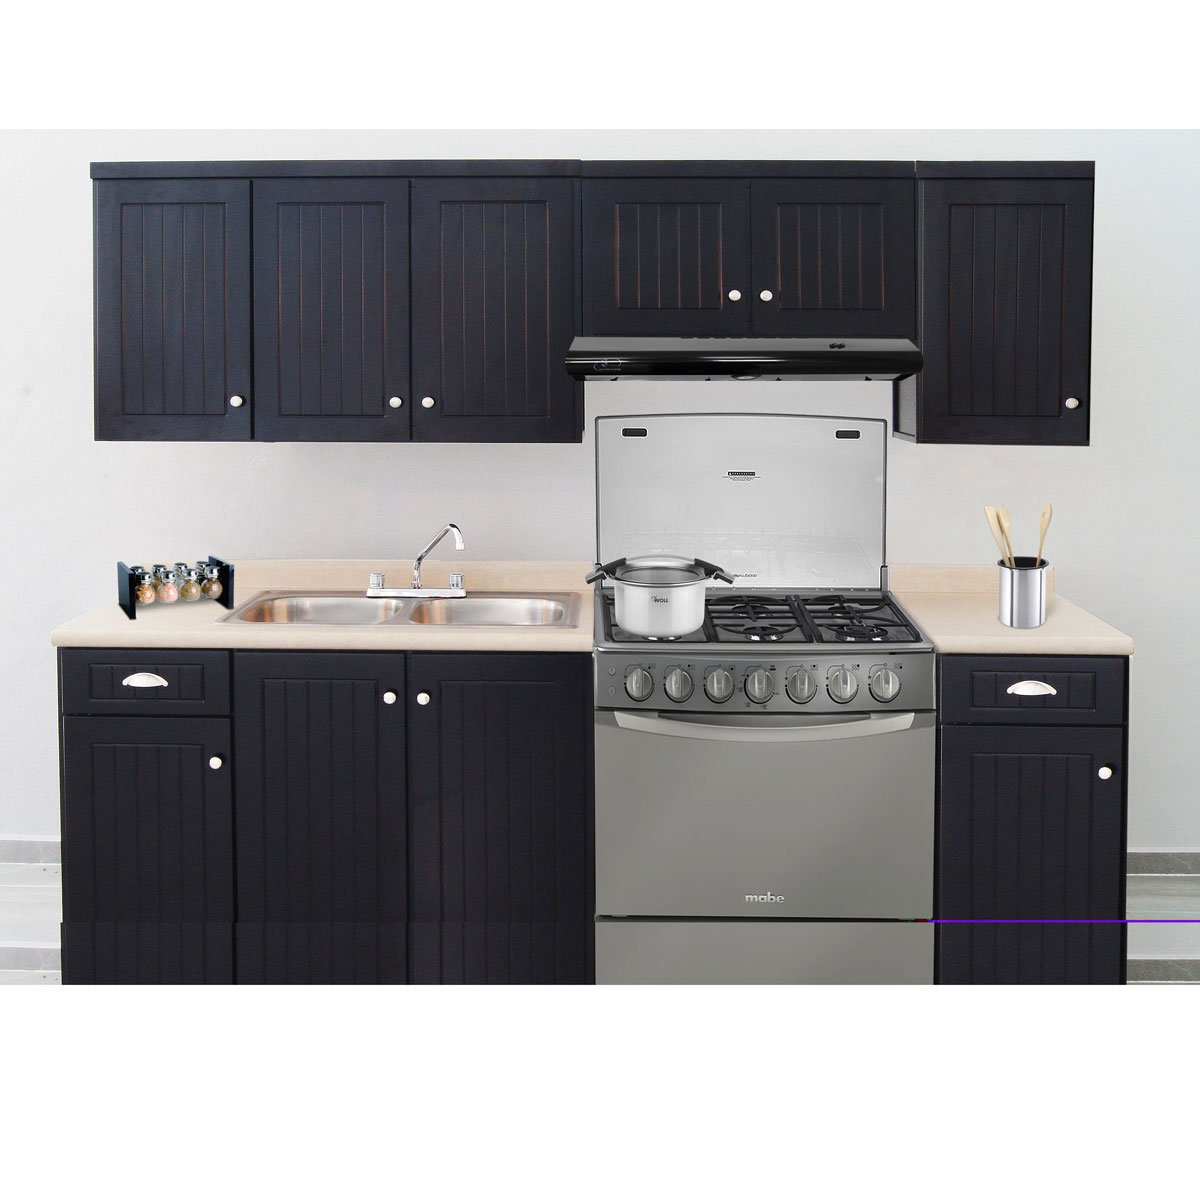 Cocina 3 Metros Lineales Cocina 3 Metros Lineales Amazing Cocinas Lineales With